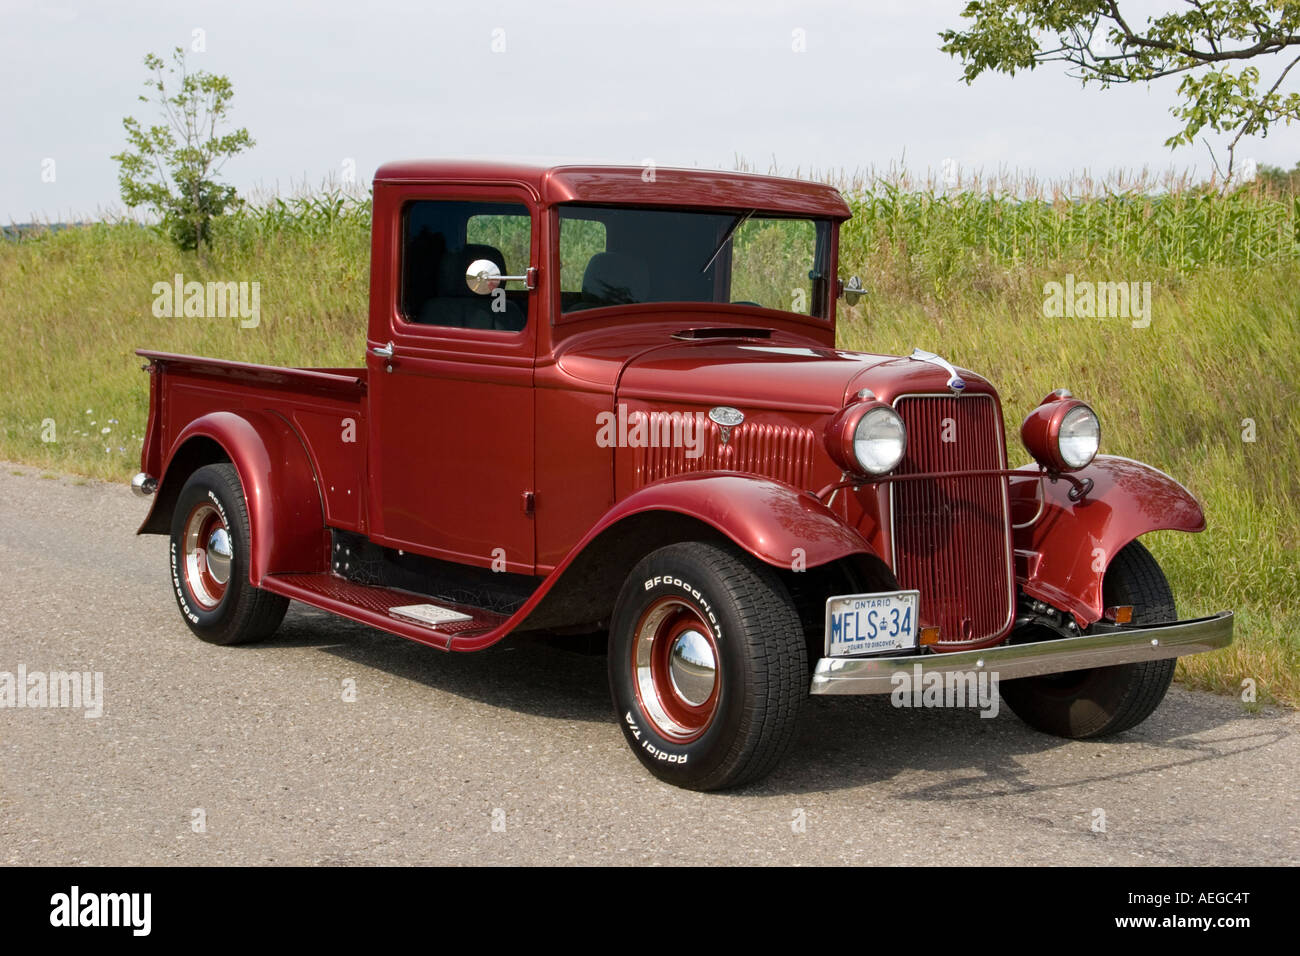 1934 ford pick up truck model b stock photo 13677047 alamy. Black Bedroom Furniture Sets. Home Design Ideas